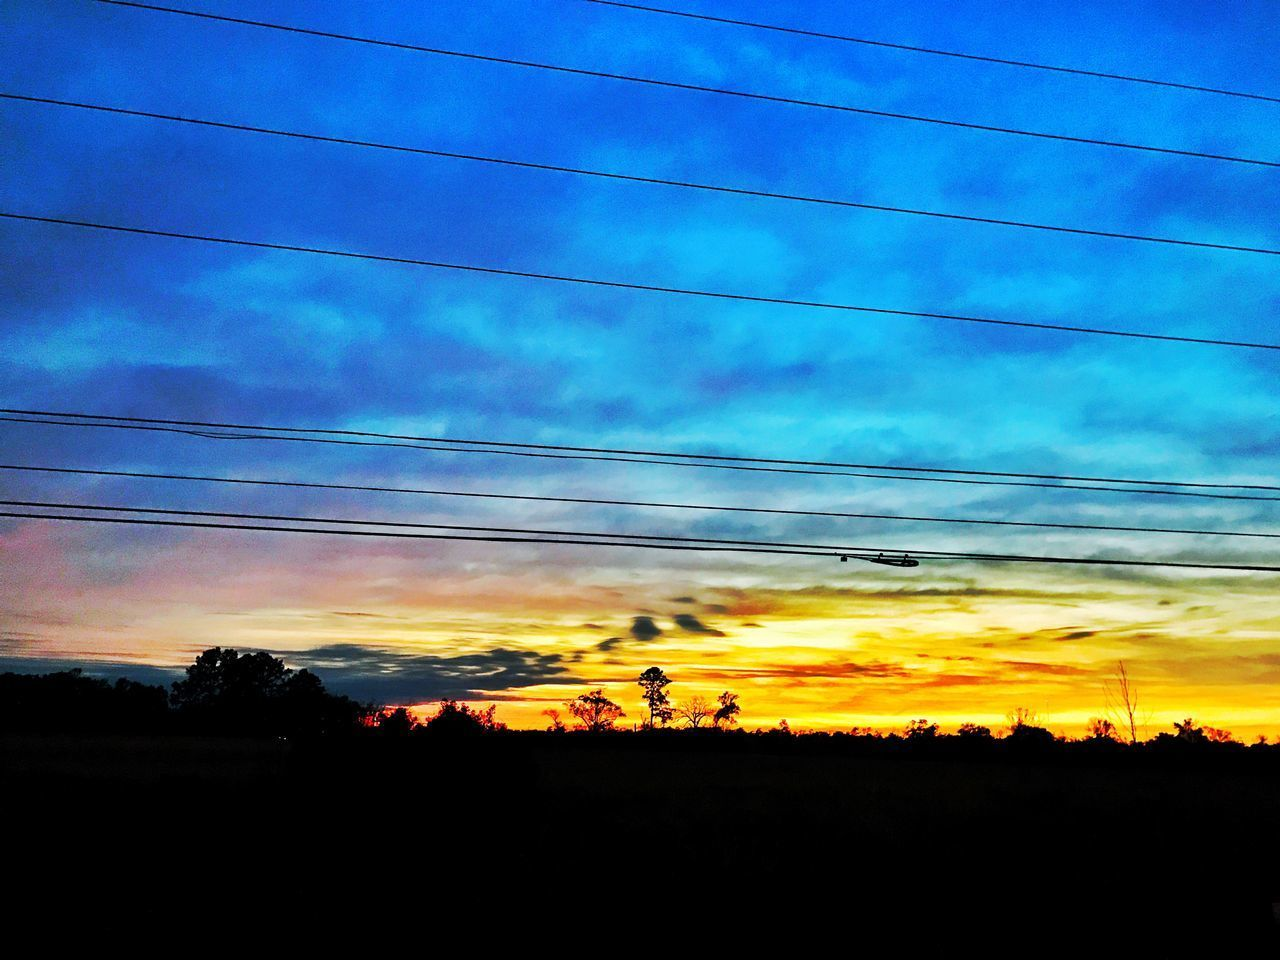 silhouette, sunset, sky, nature, cloud - sky, beauty in nature, scenics, cable, tranquil scene, outdoors, field, tree, tranquility, landscape, low angle view, no people, blue, technology, electricity pylon, telephone line, day